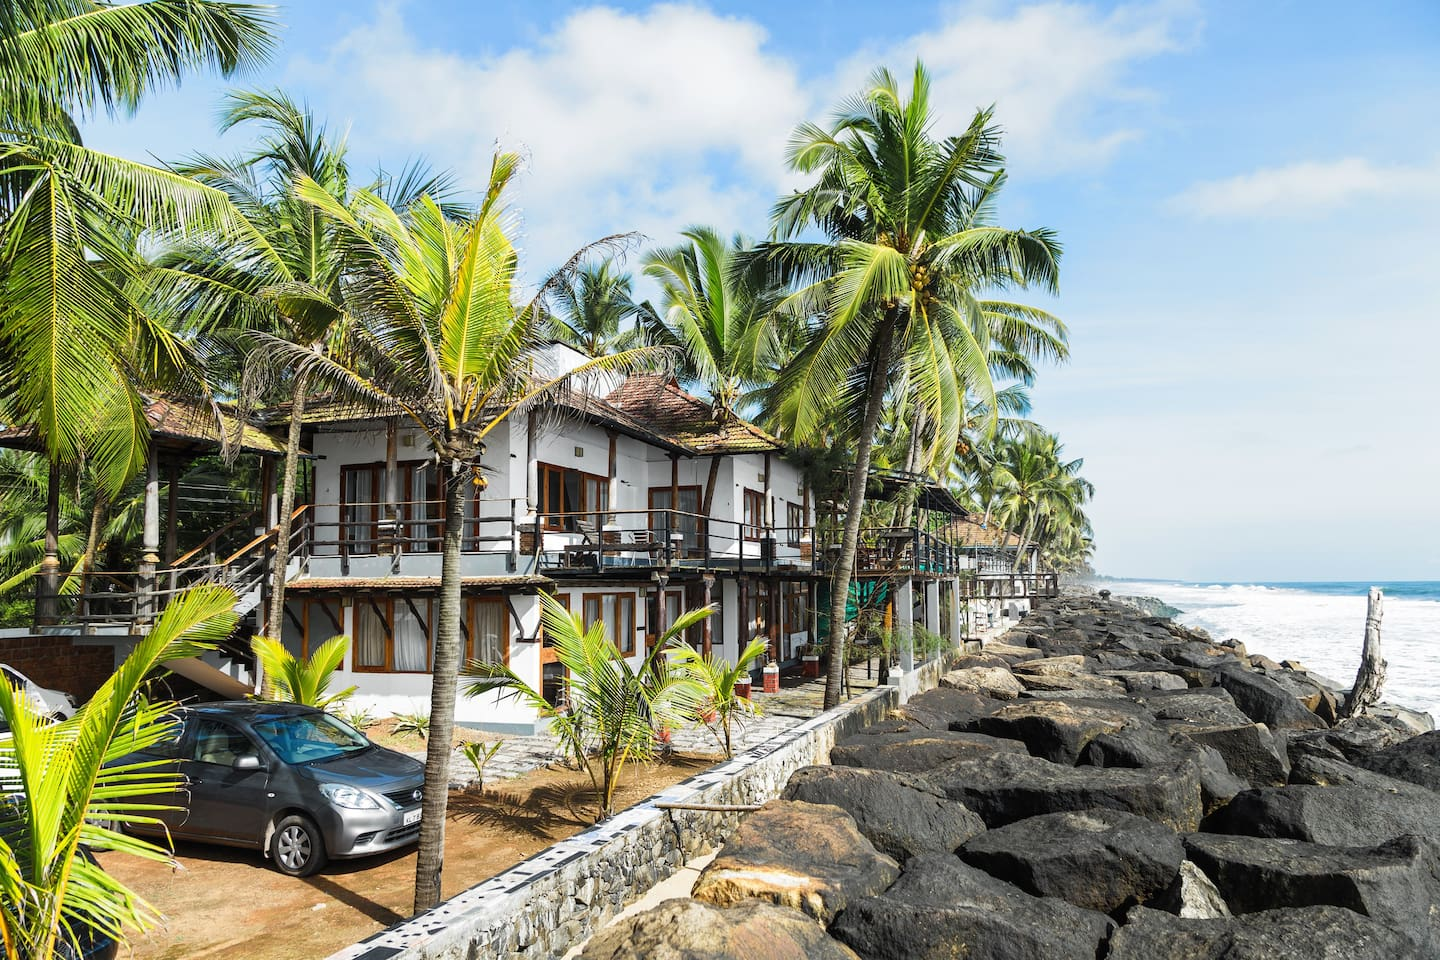 36 Palms Boutique Retreat 36palmskochi Keralasea View Room Villas For Rent In Vypin Kl